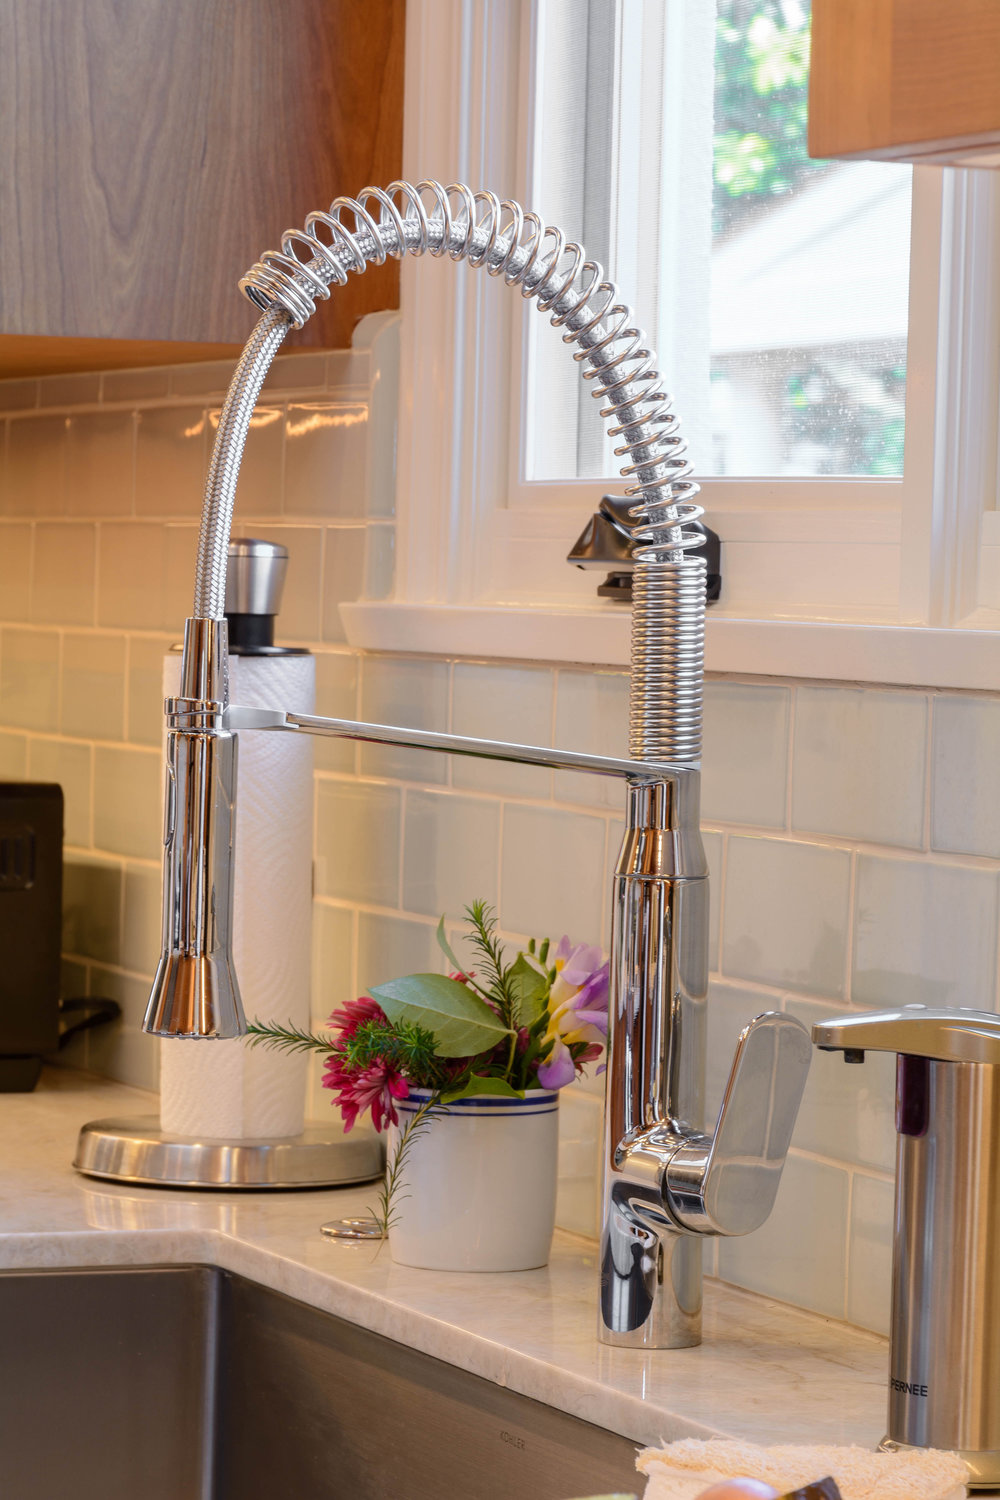 Commercial chrome kitchen faucet assorted with a stainless steel sink